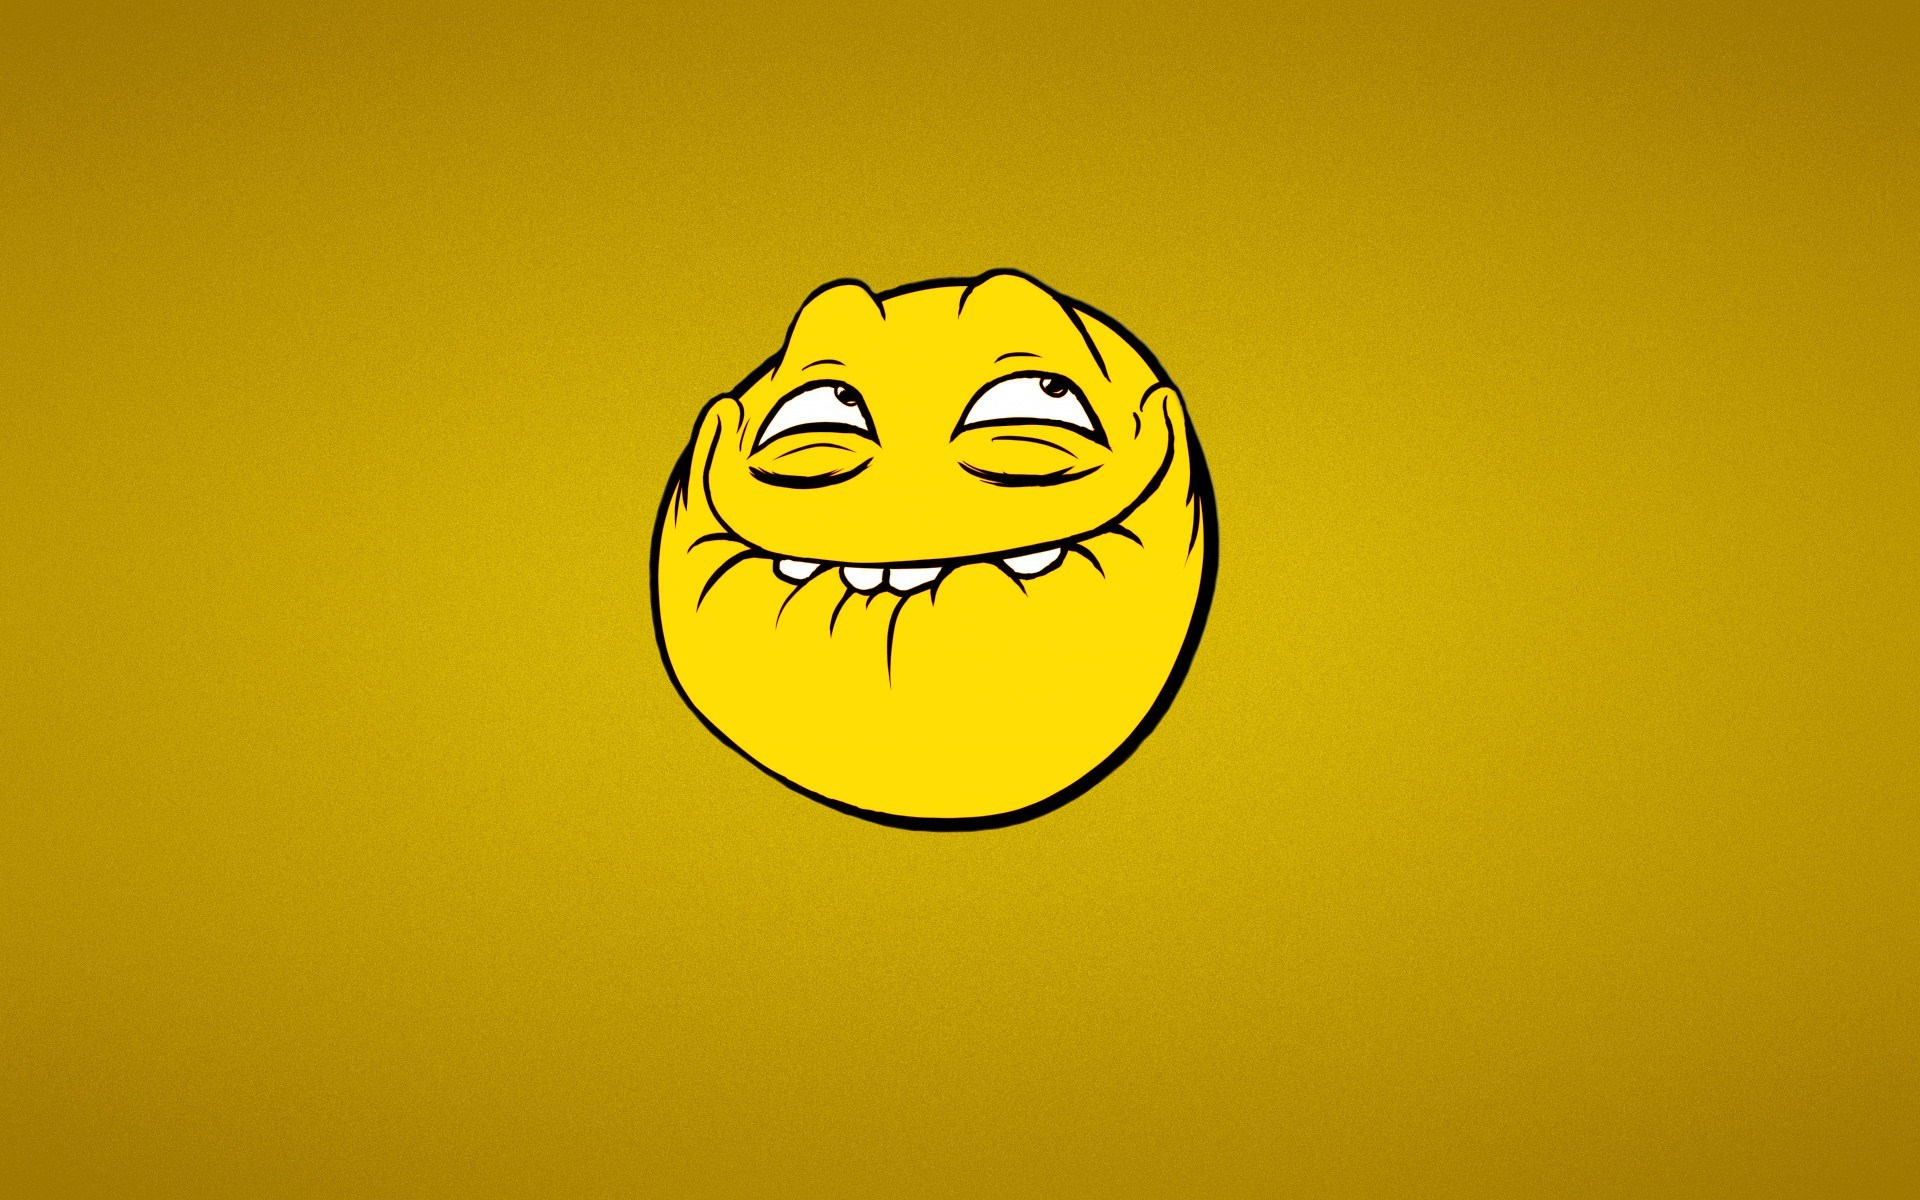 Smile Trollface Yellow Cartoon